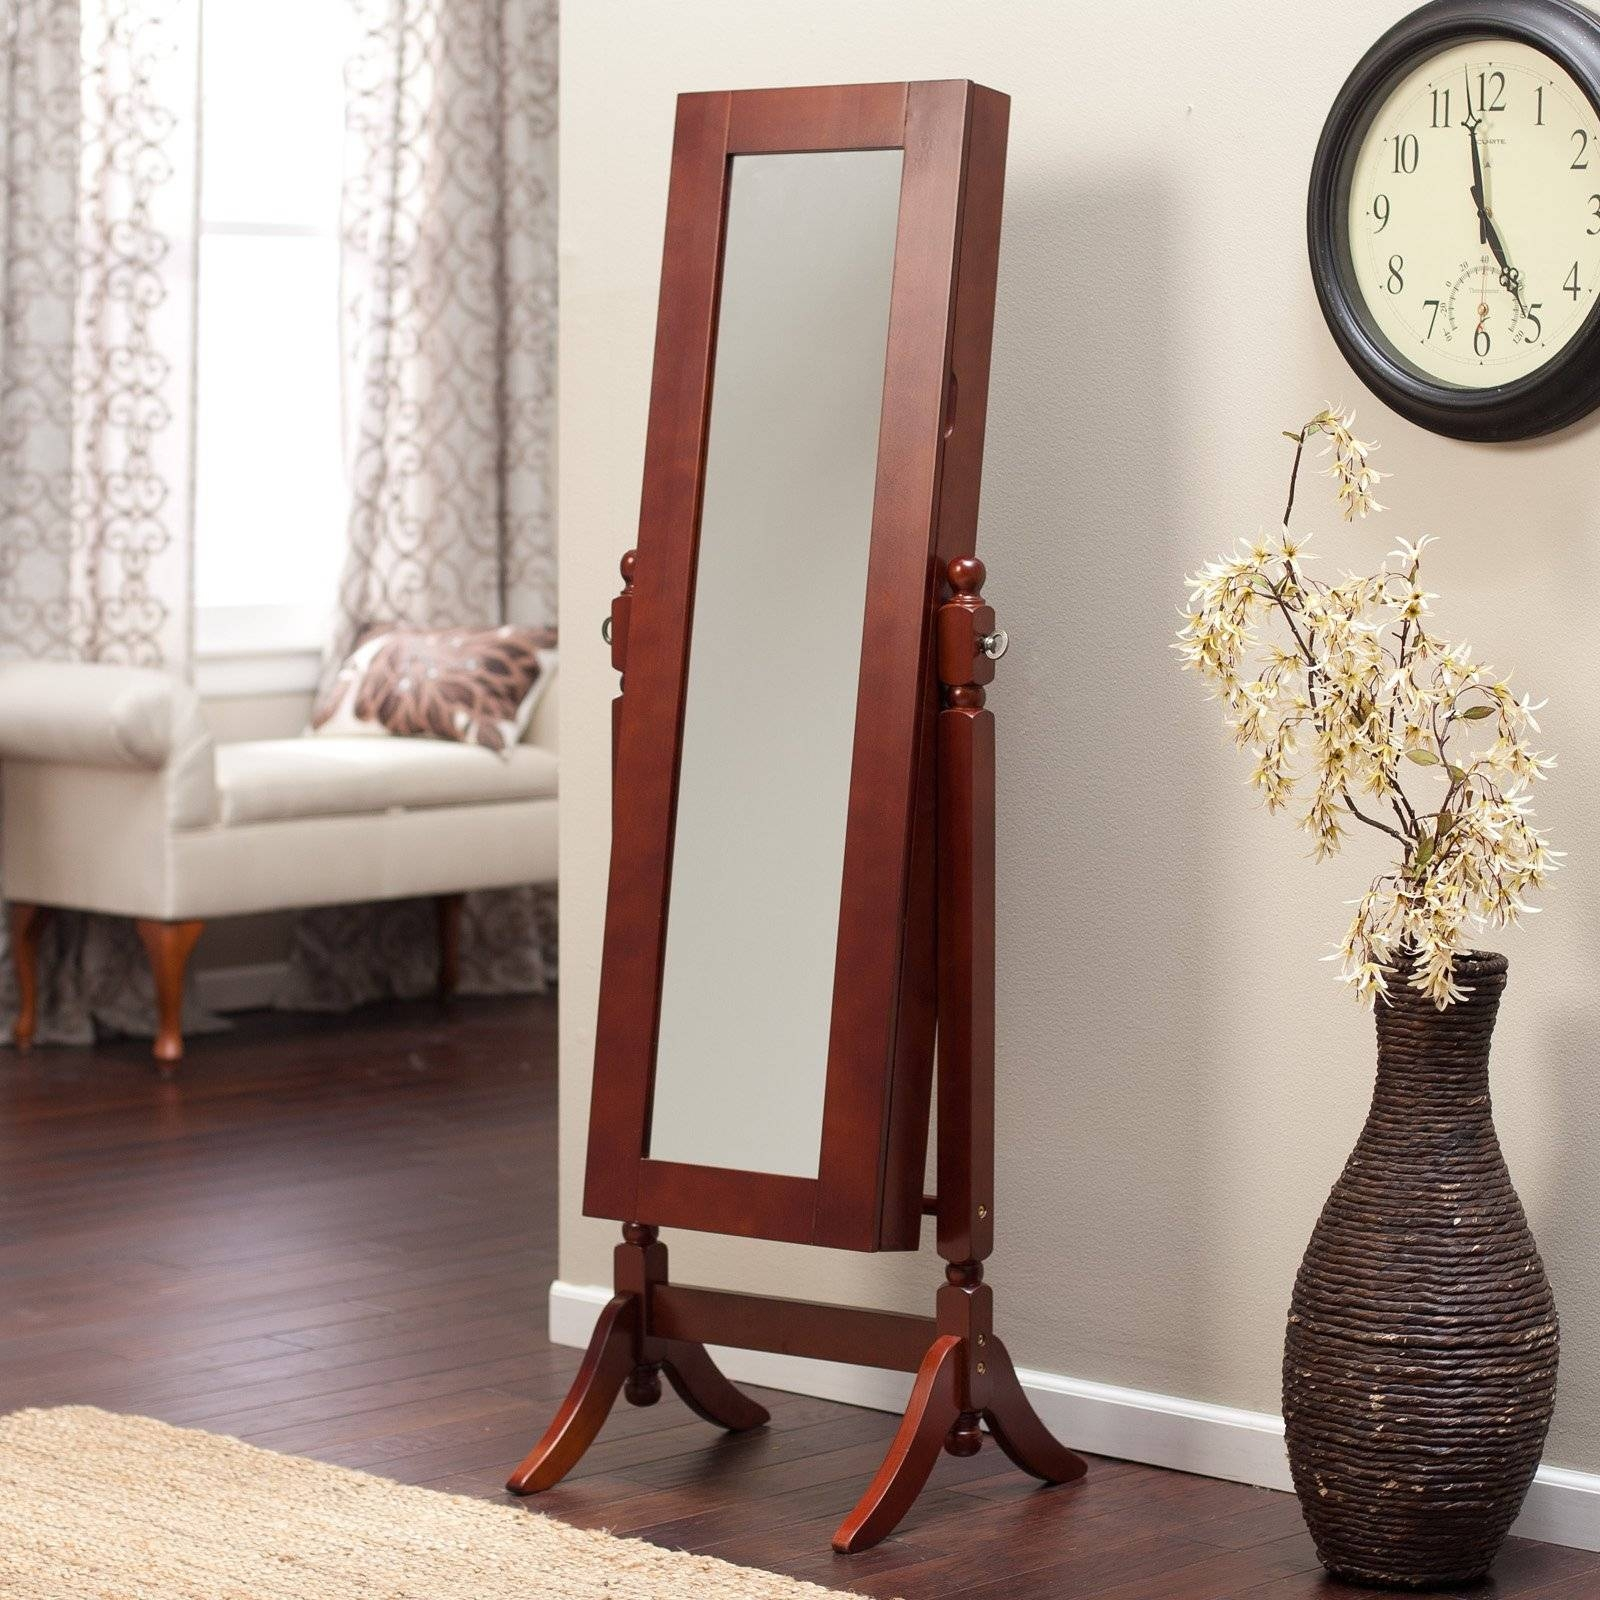 Bedroom Furniture Sets : Wooden Mirror Oversized Wall Mirrors for Small Gold Mirrors (Image 7 of 25)